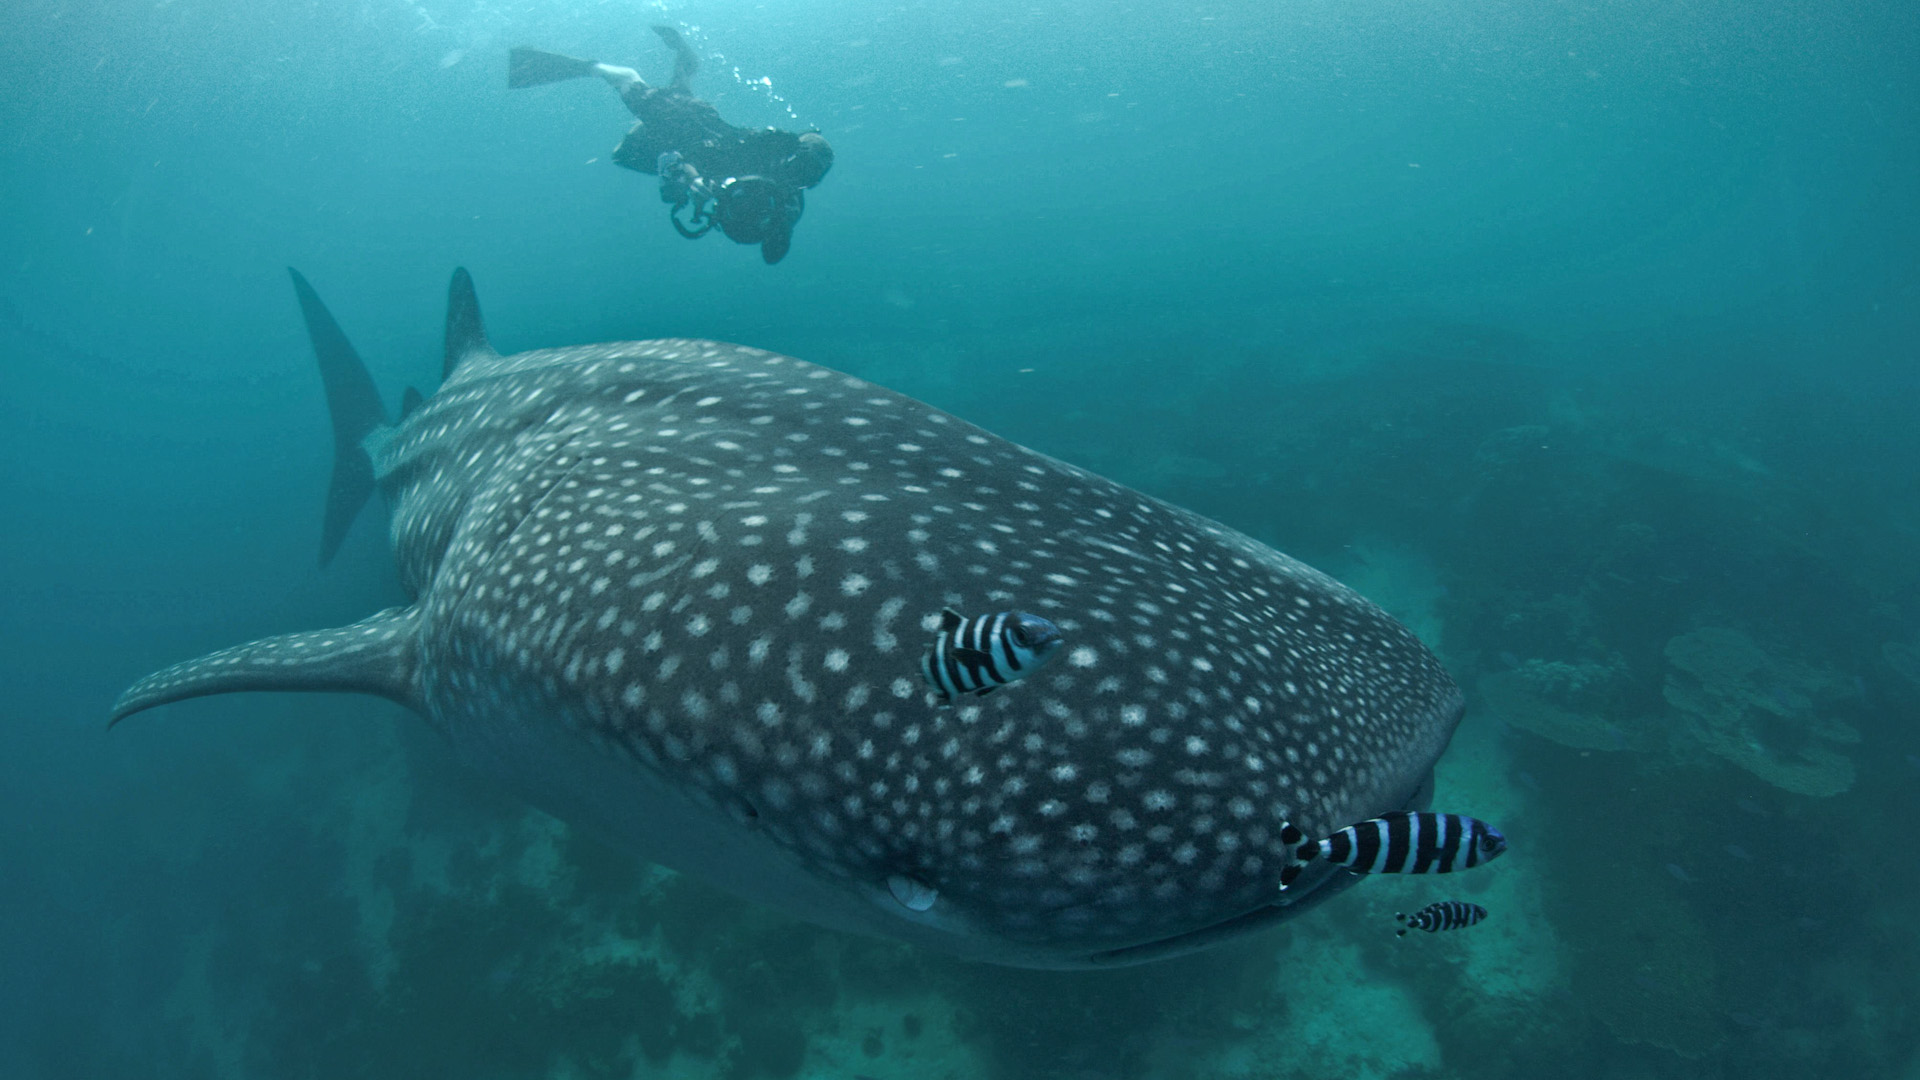 Swimming with whale sharks in Djibouti - Copyright Joshua Barton